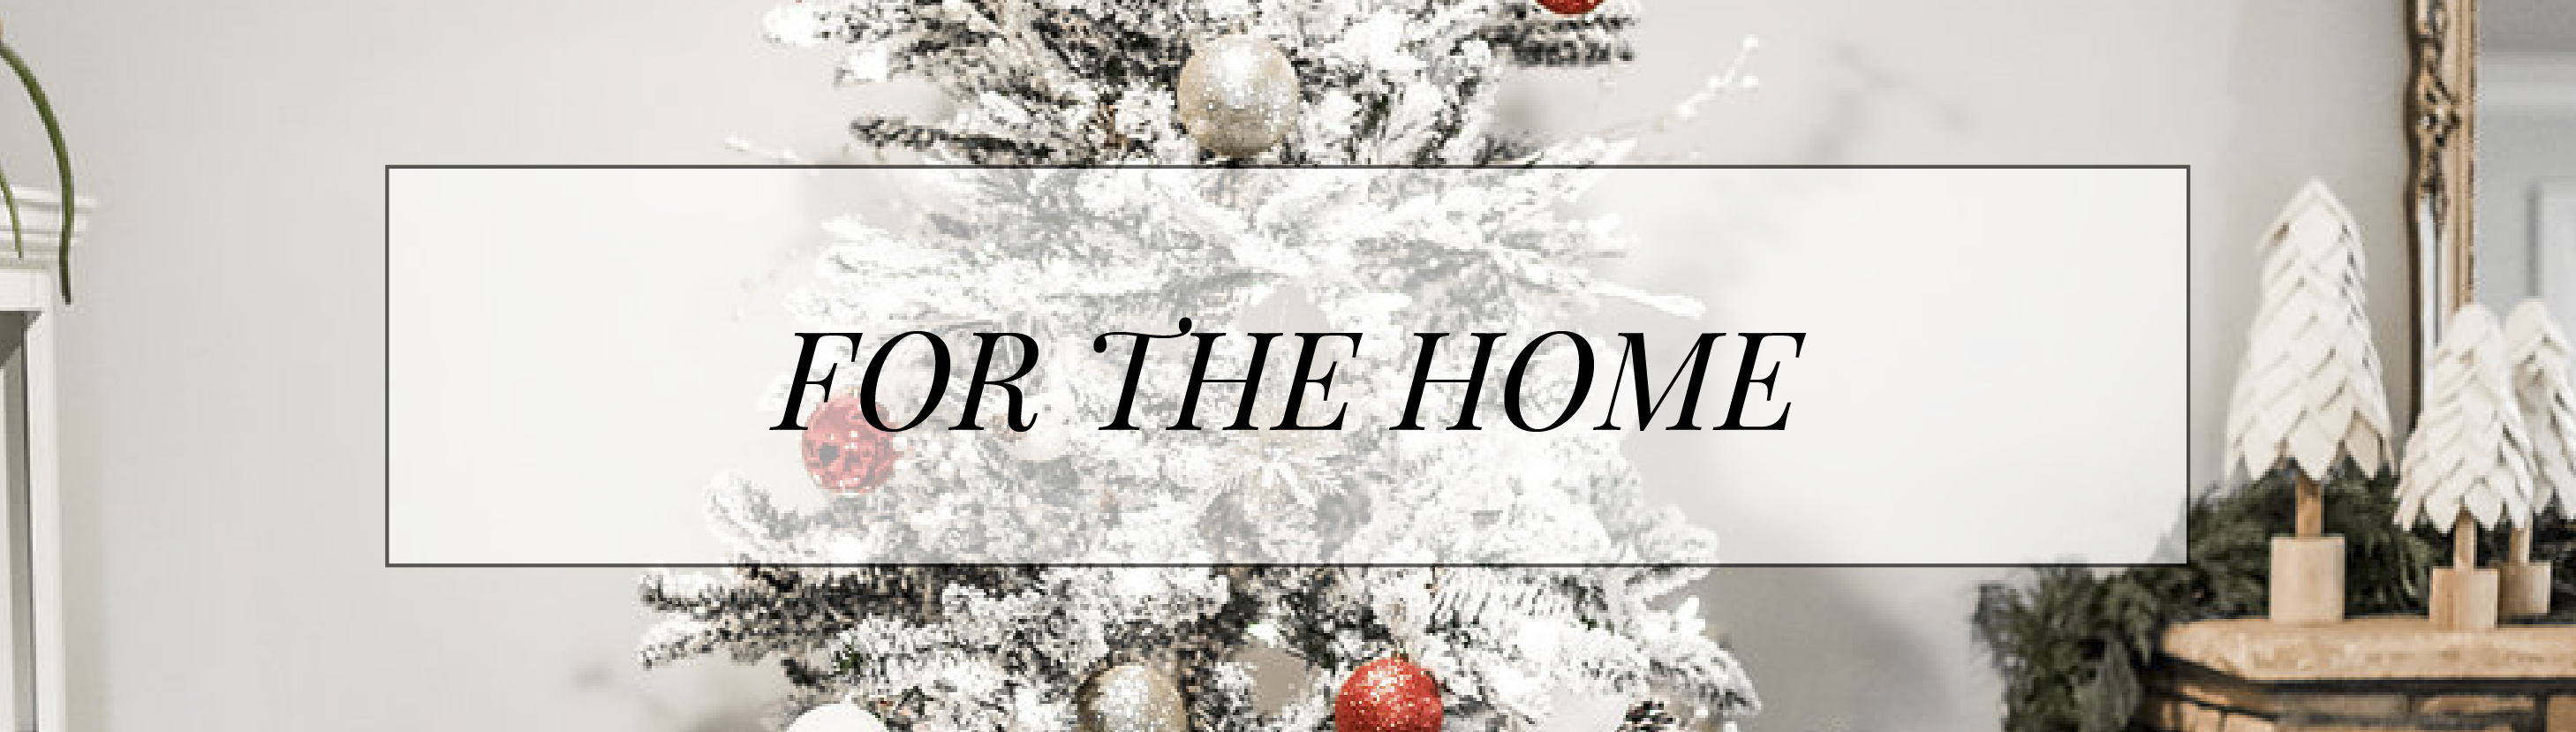 Elle Apparel Holiday Gift Guide: For The Home